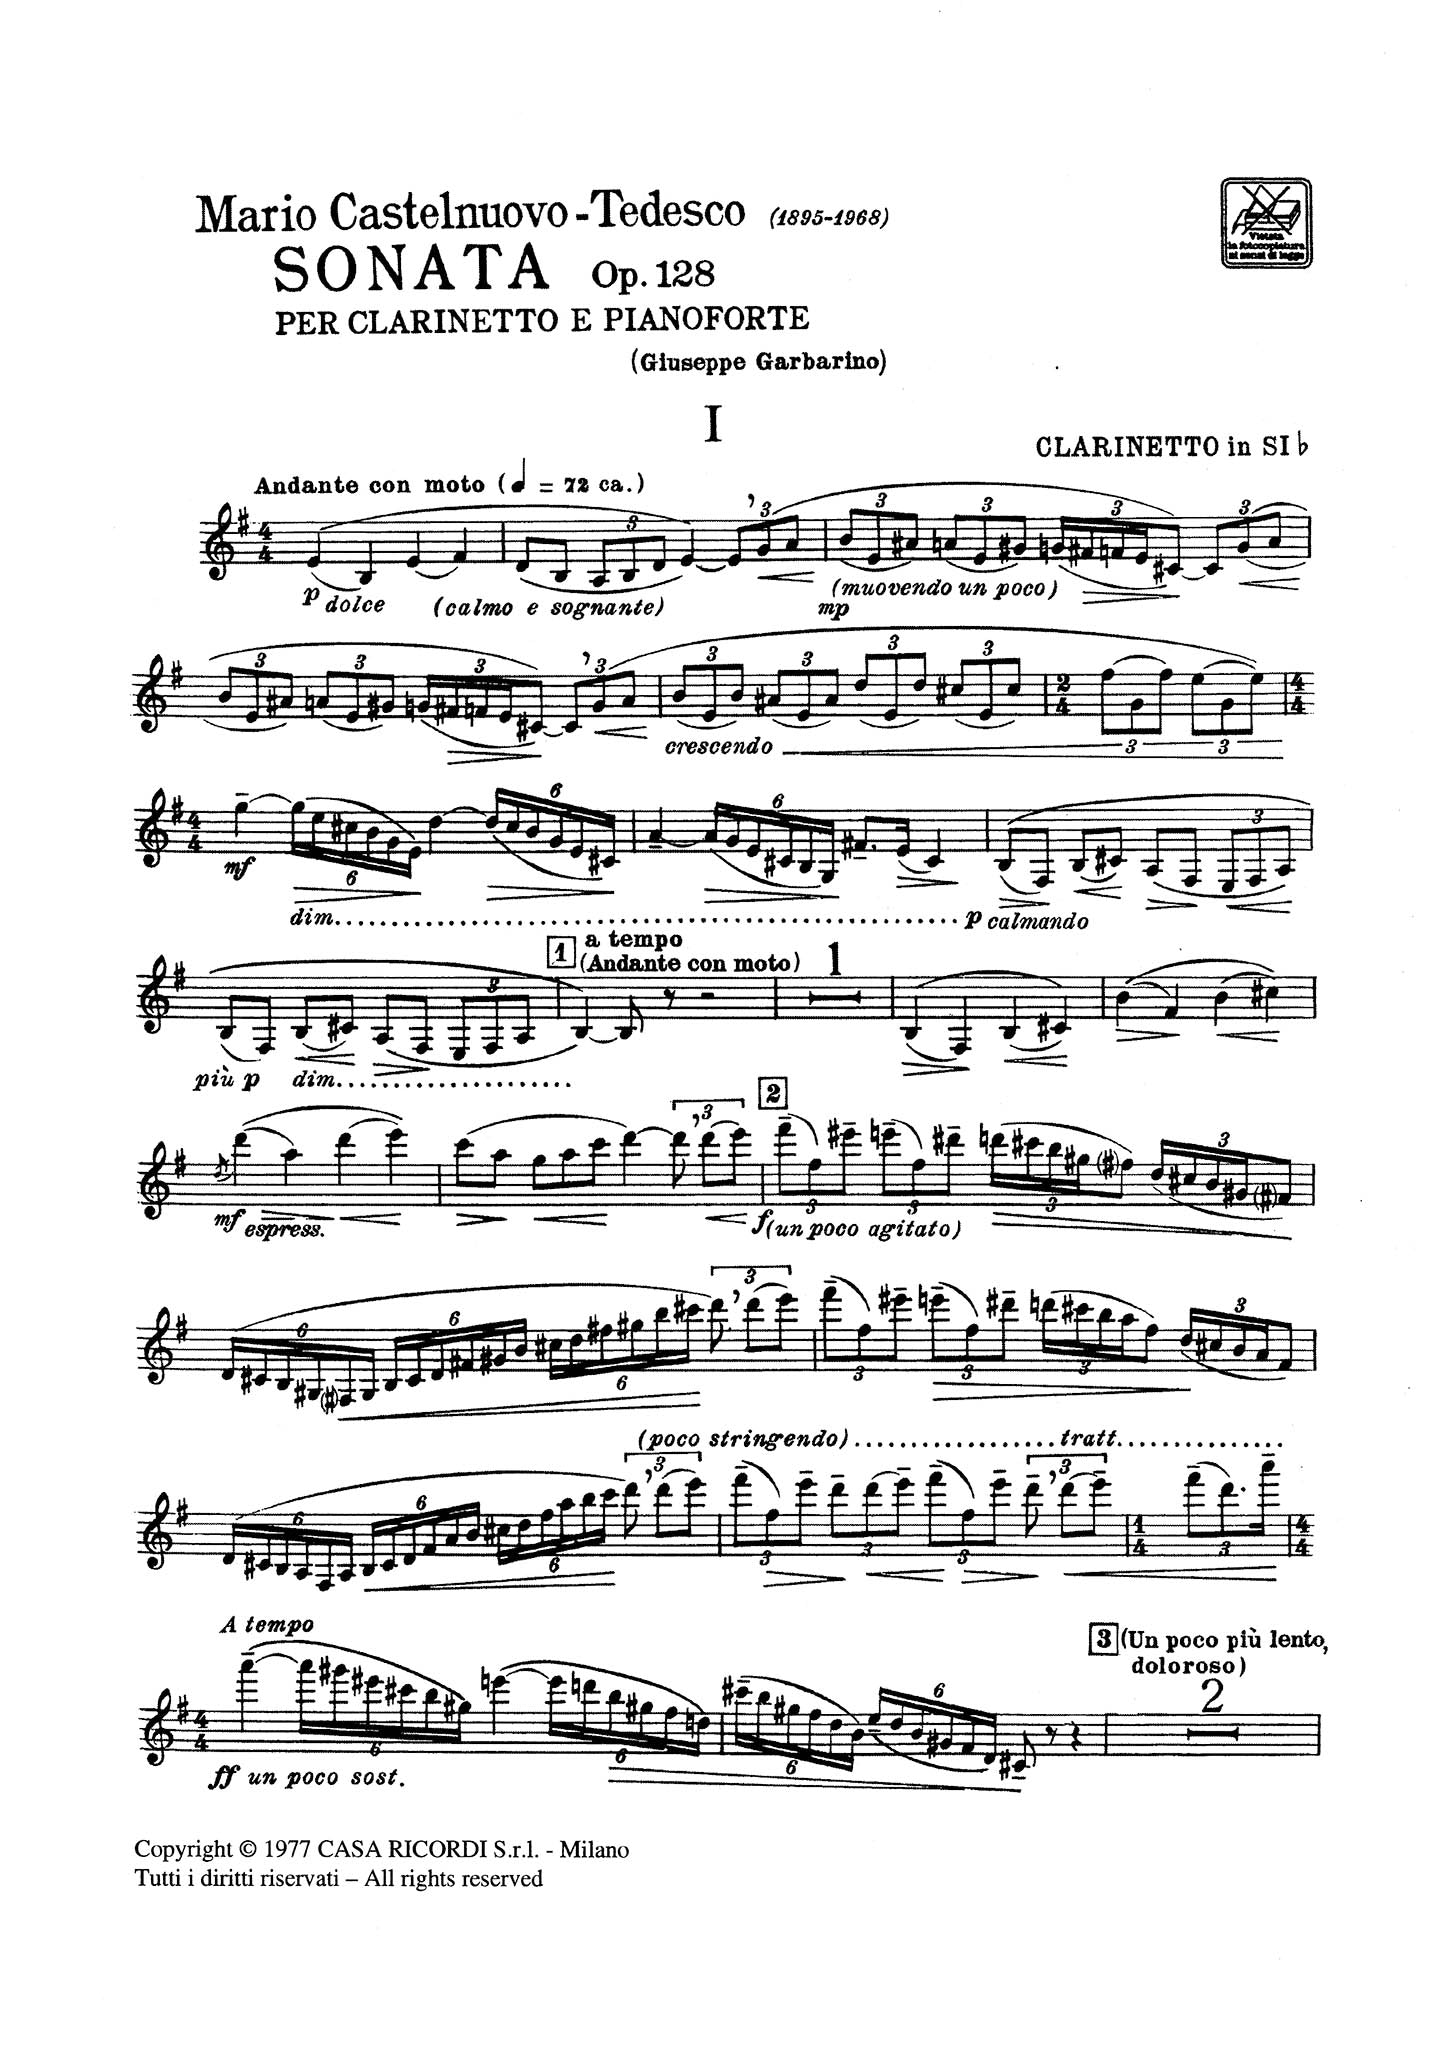 Sonata, Op. 128 Clarinet part